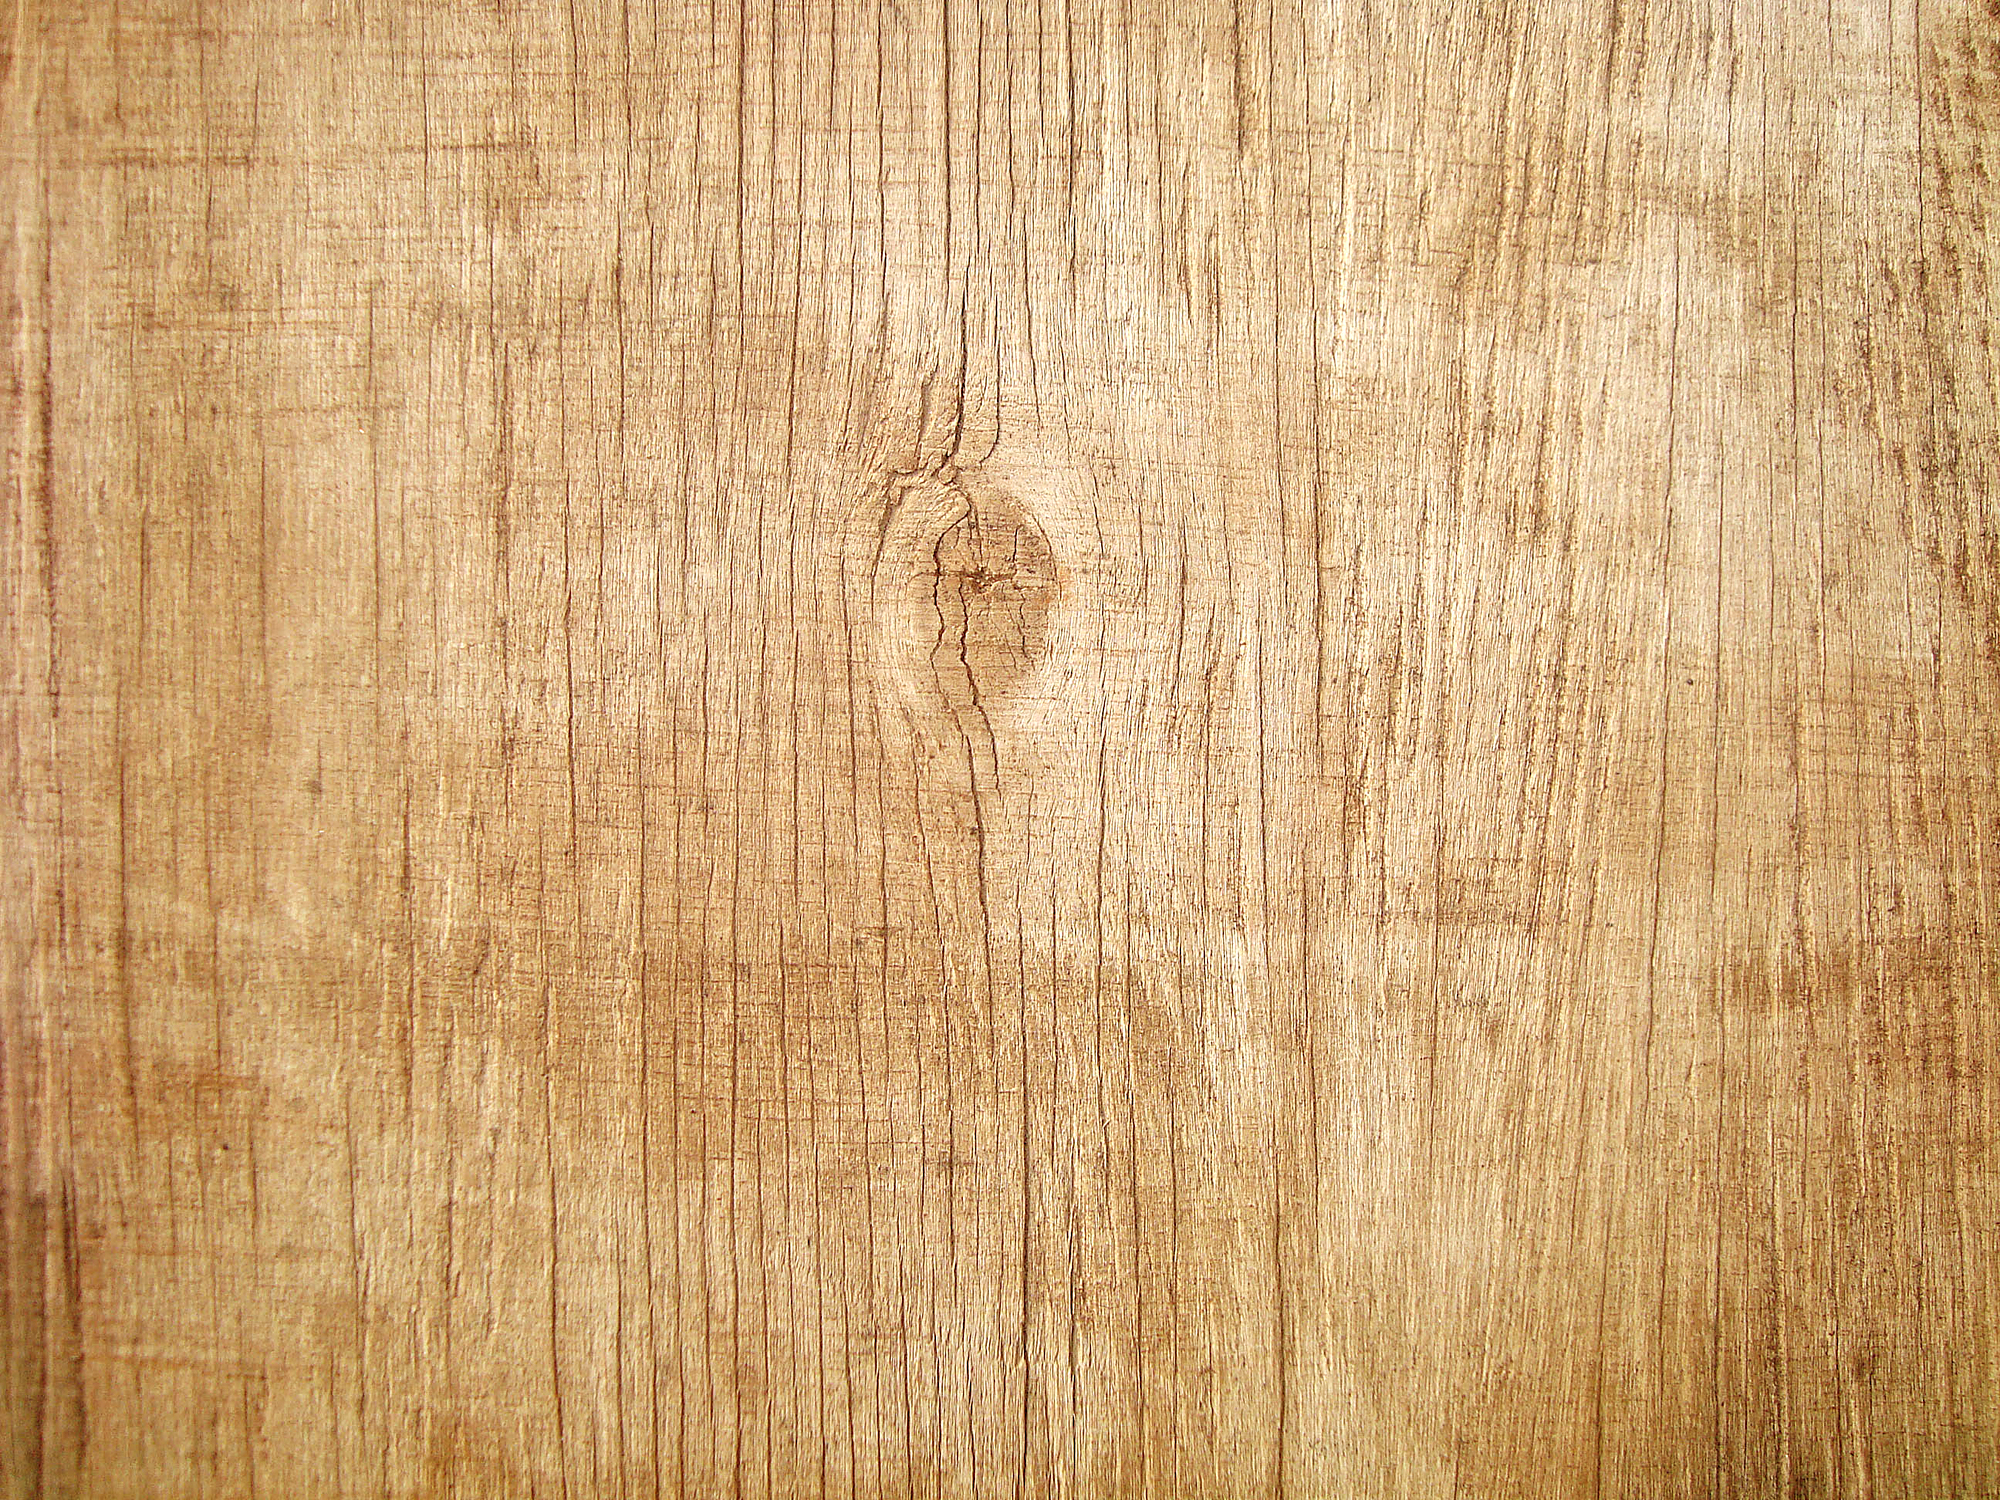 Http Digitalresult Com View 8 Wooden Texture